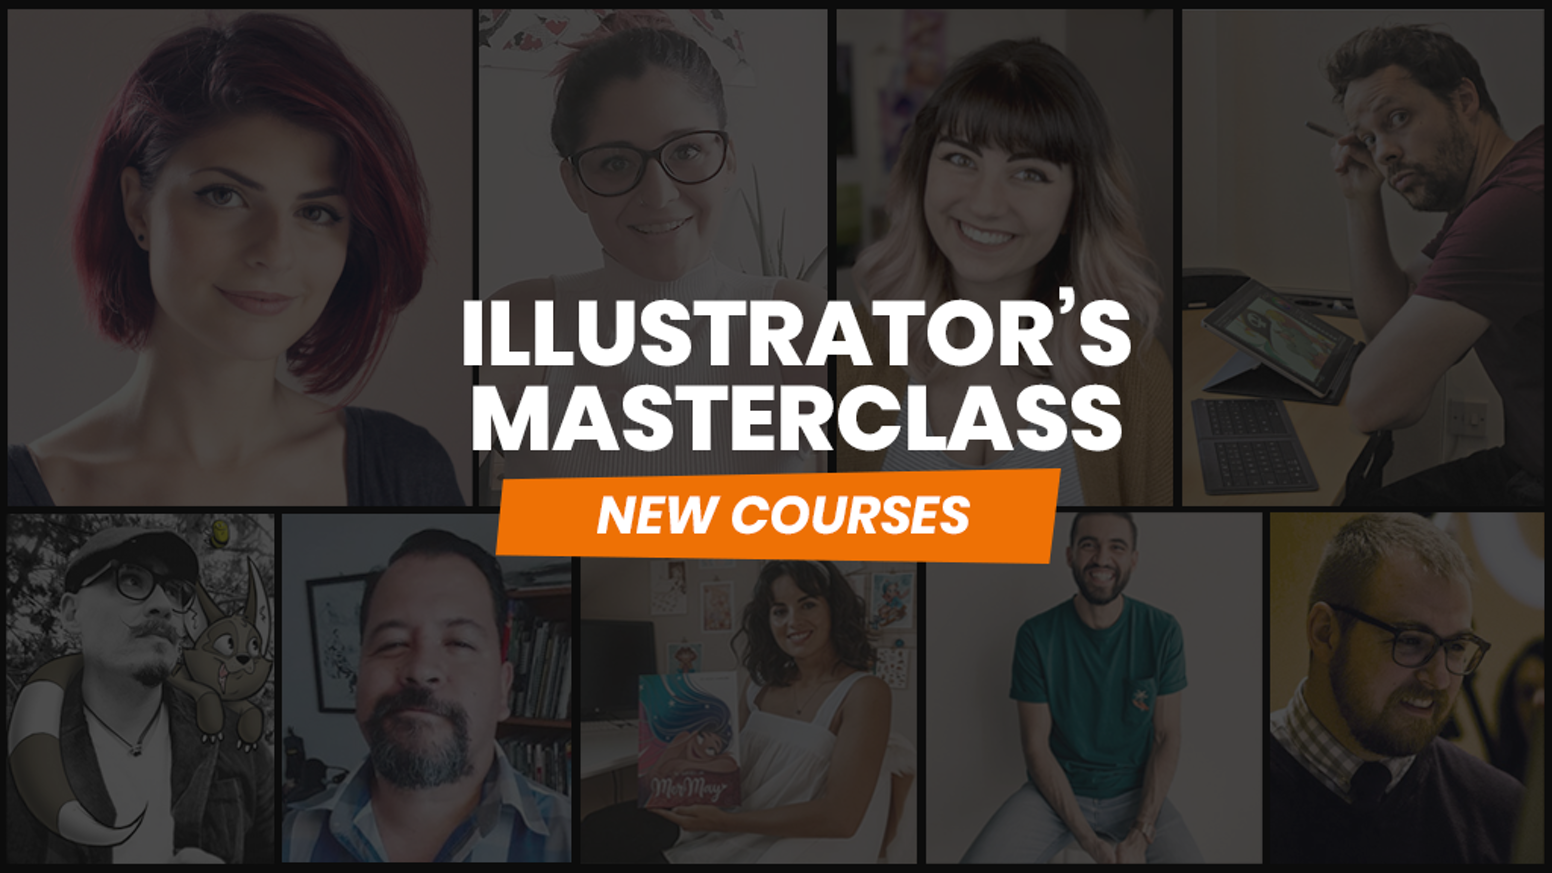 10 BRAND NEW courses added to our popular Illustrator's Masterclass. Learn from the PROS!